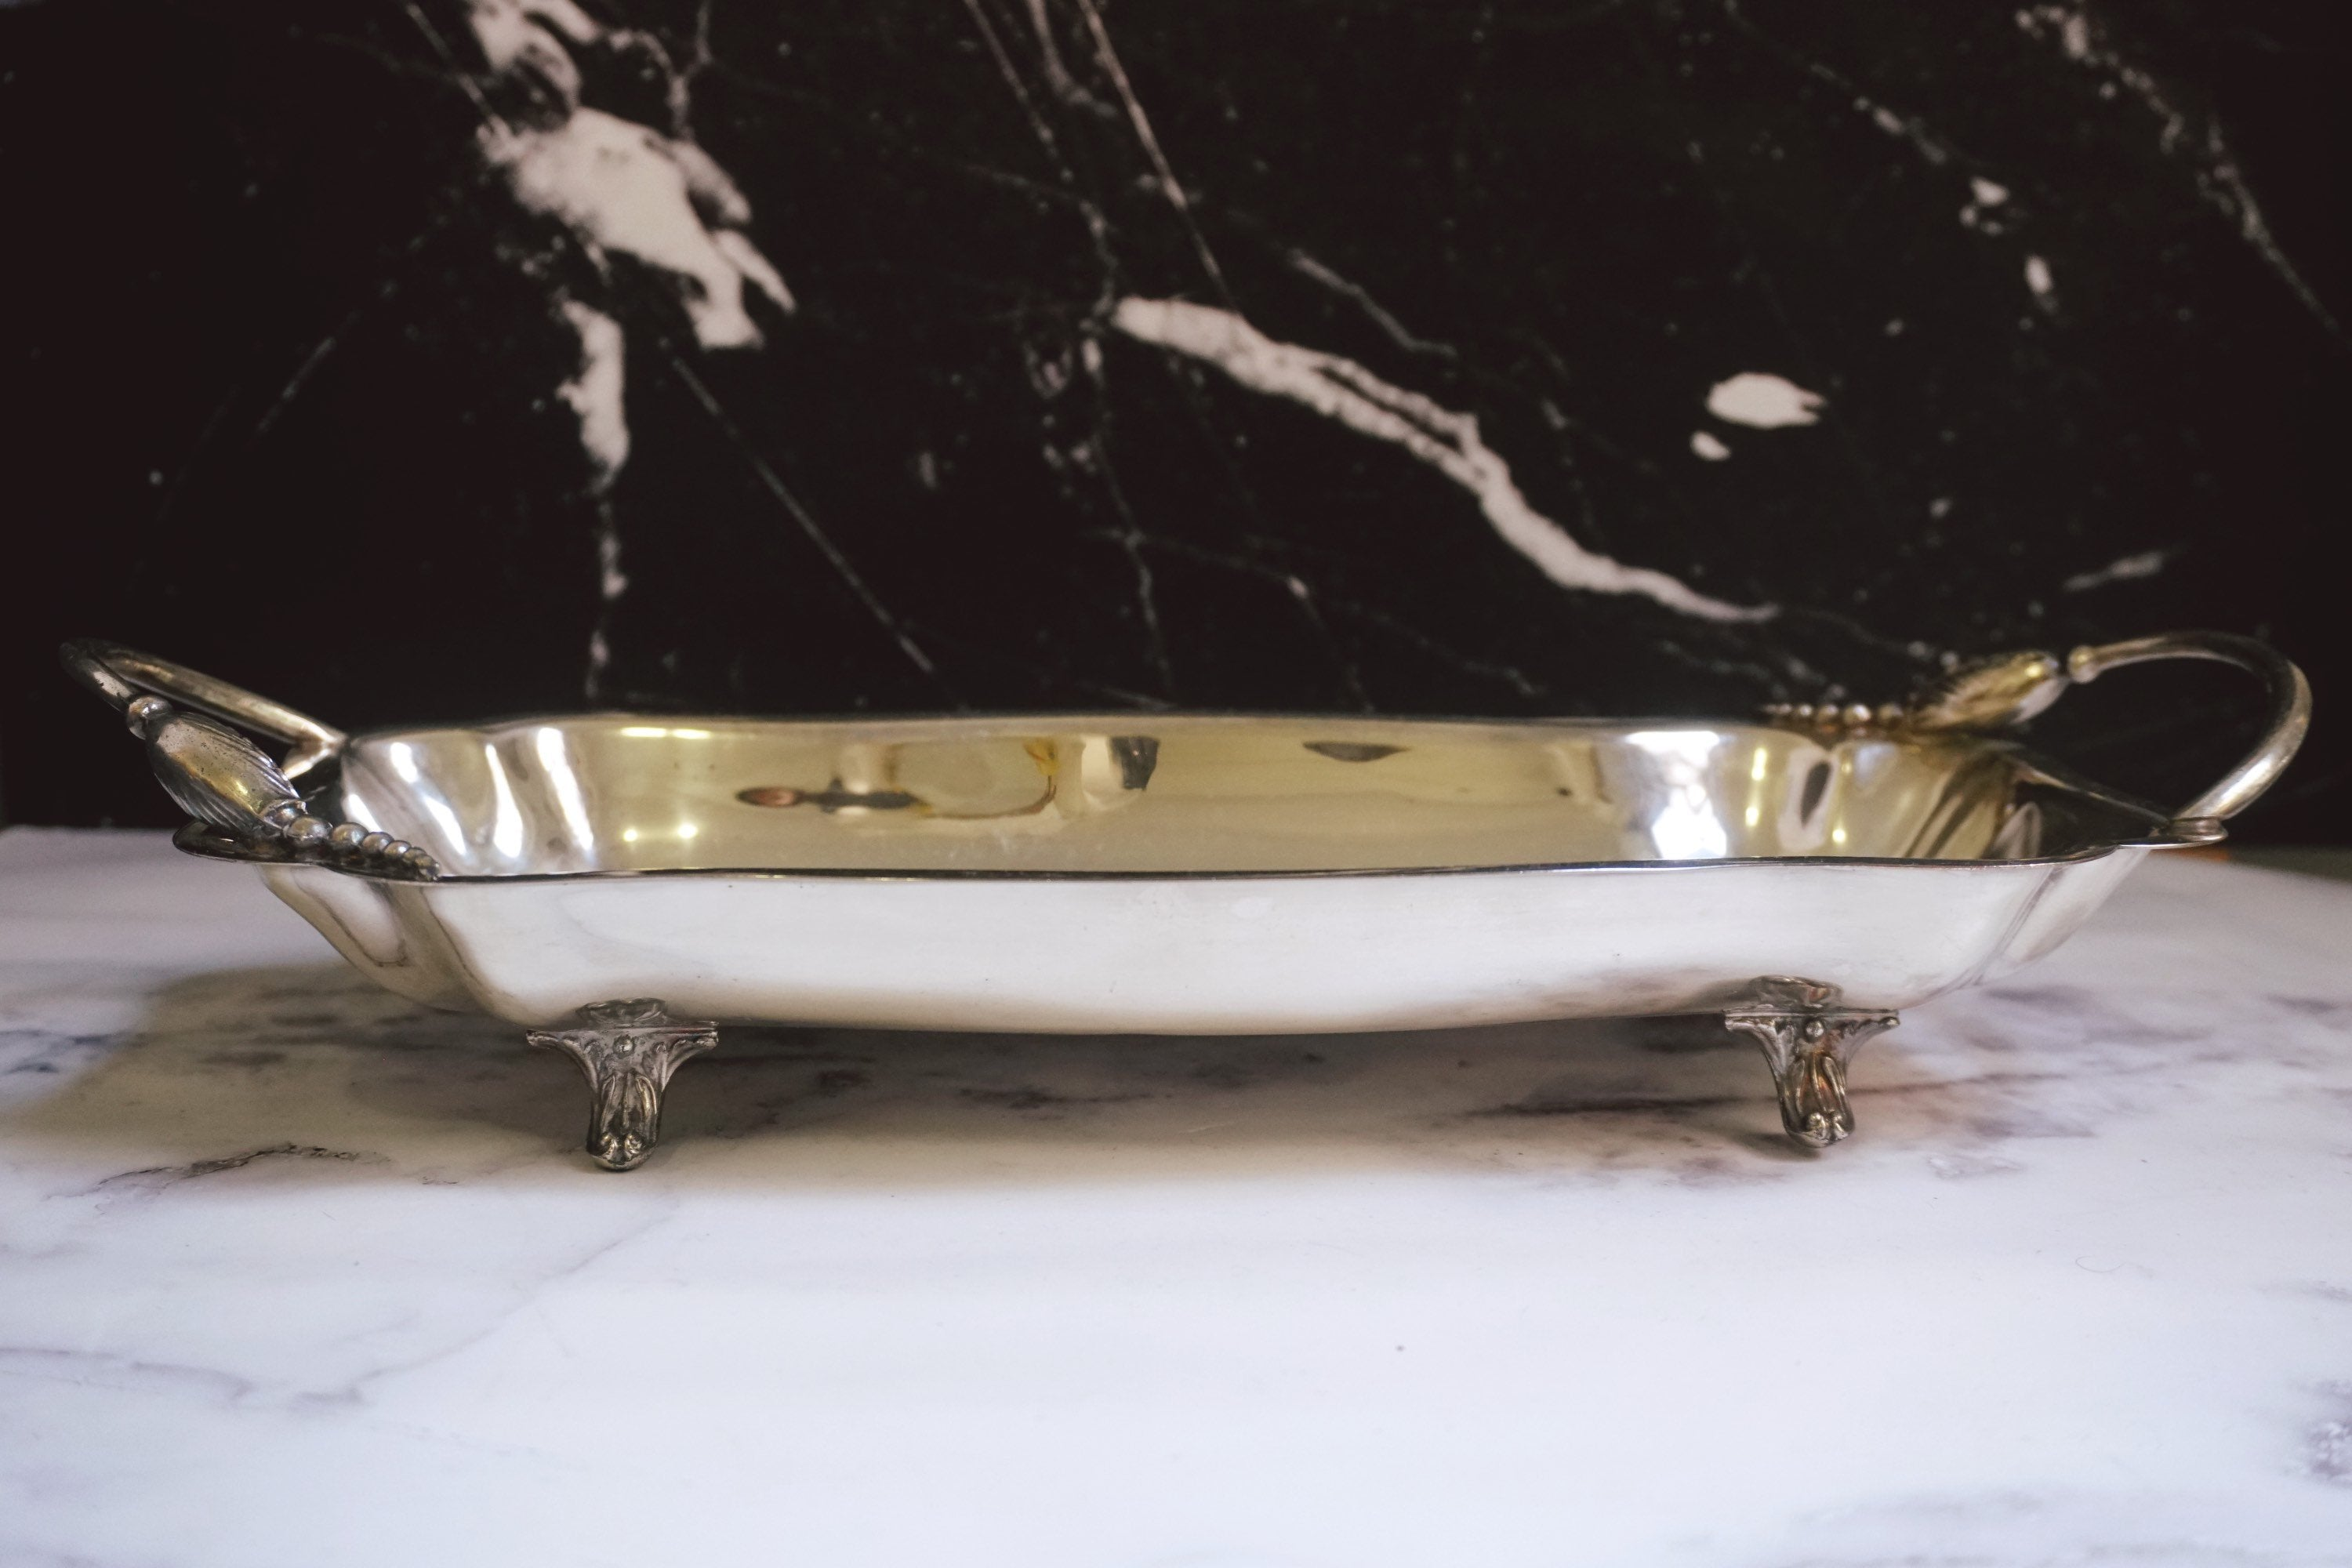 Vintage Silver-Plated Four Footed Serving Tray with Handles | Silver Fruit Bowl Planter - Urban Nomad NYC